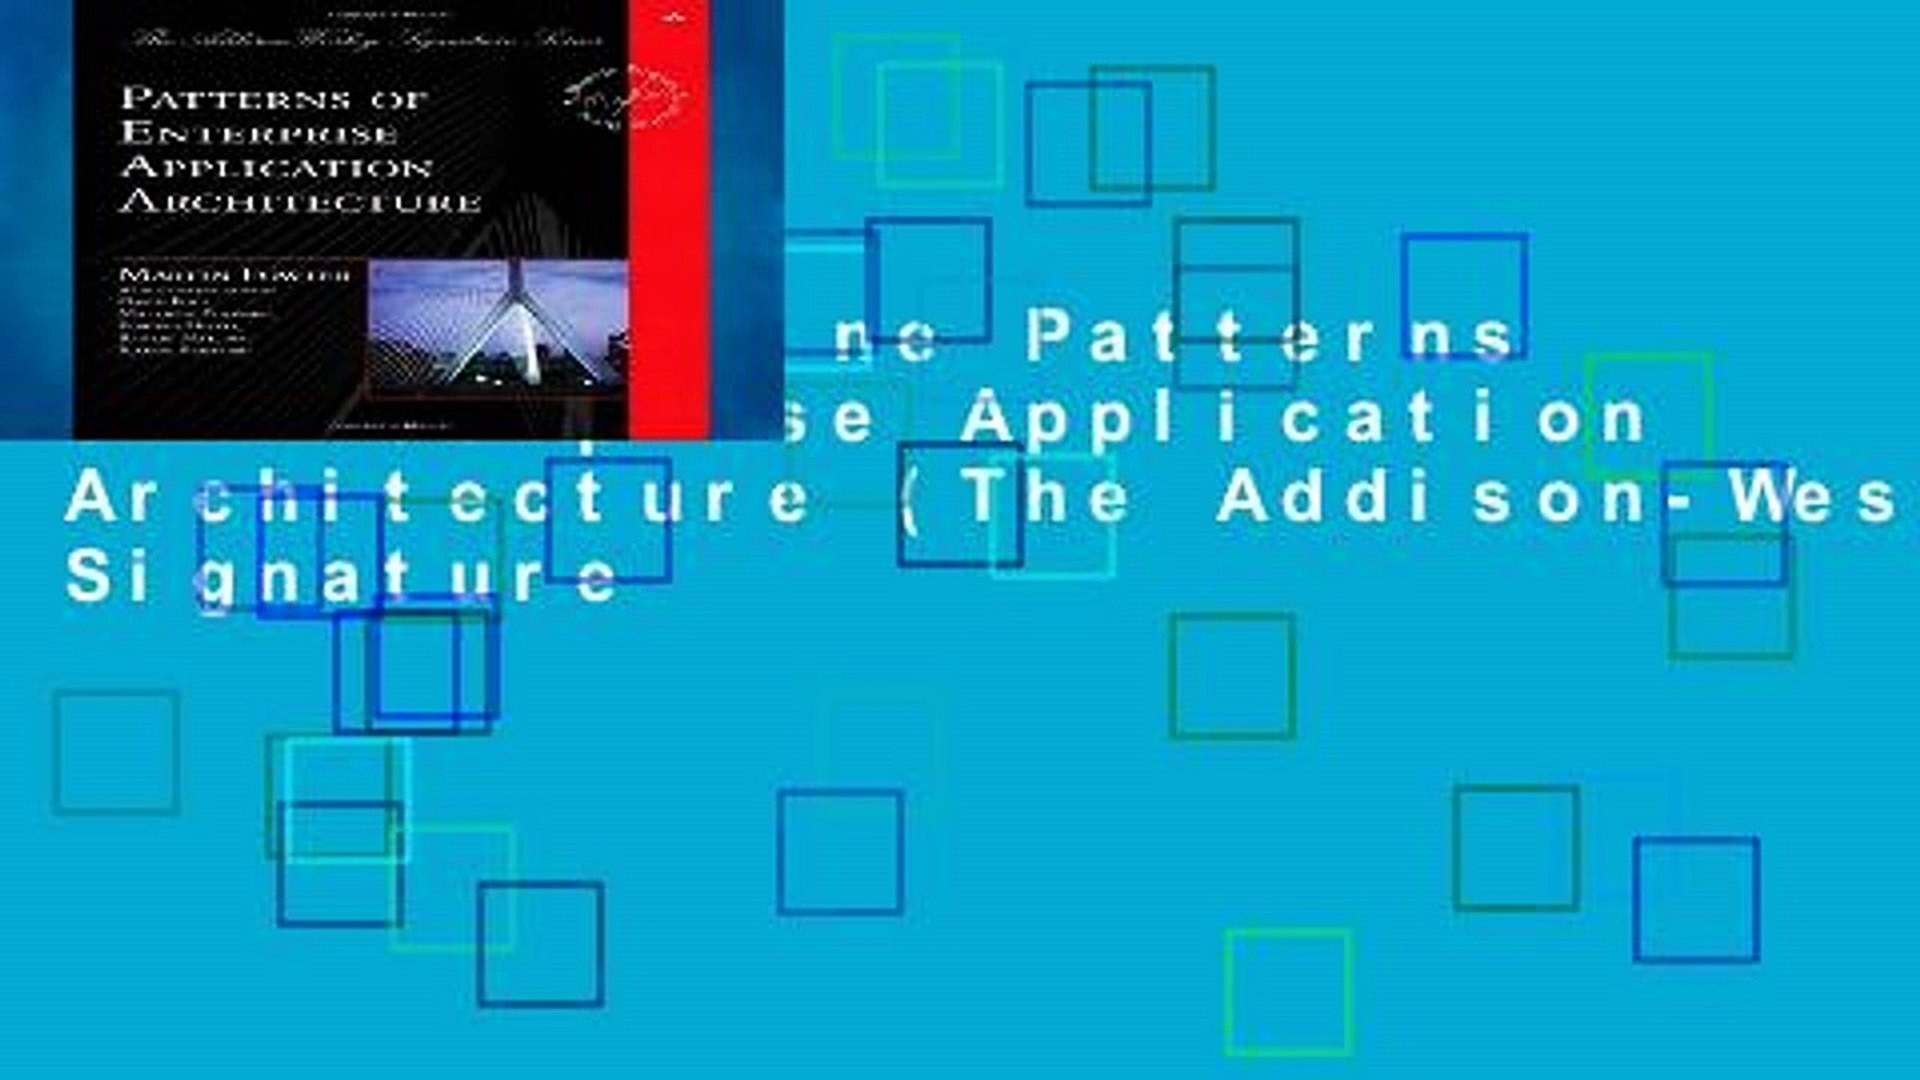 Reading Online Patterns of Enterprise Application Architecture (The  Addison-Wesley Signature